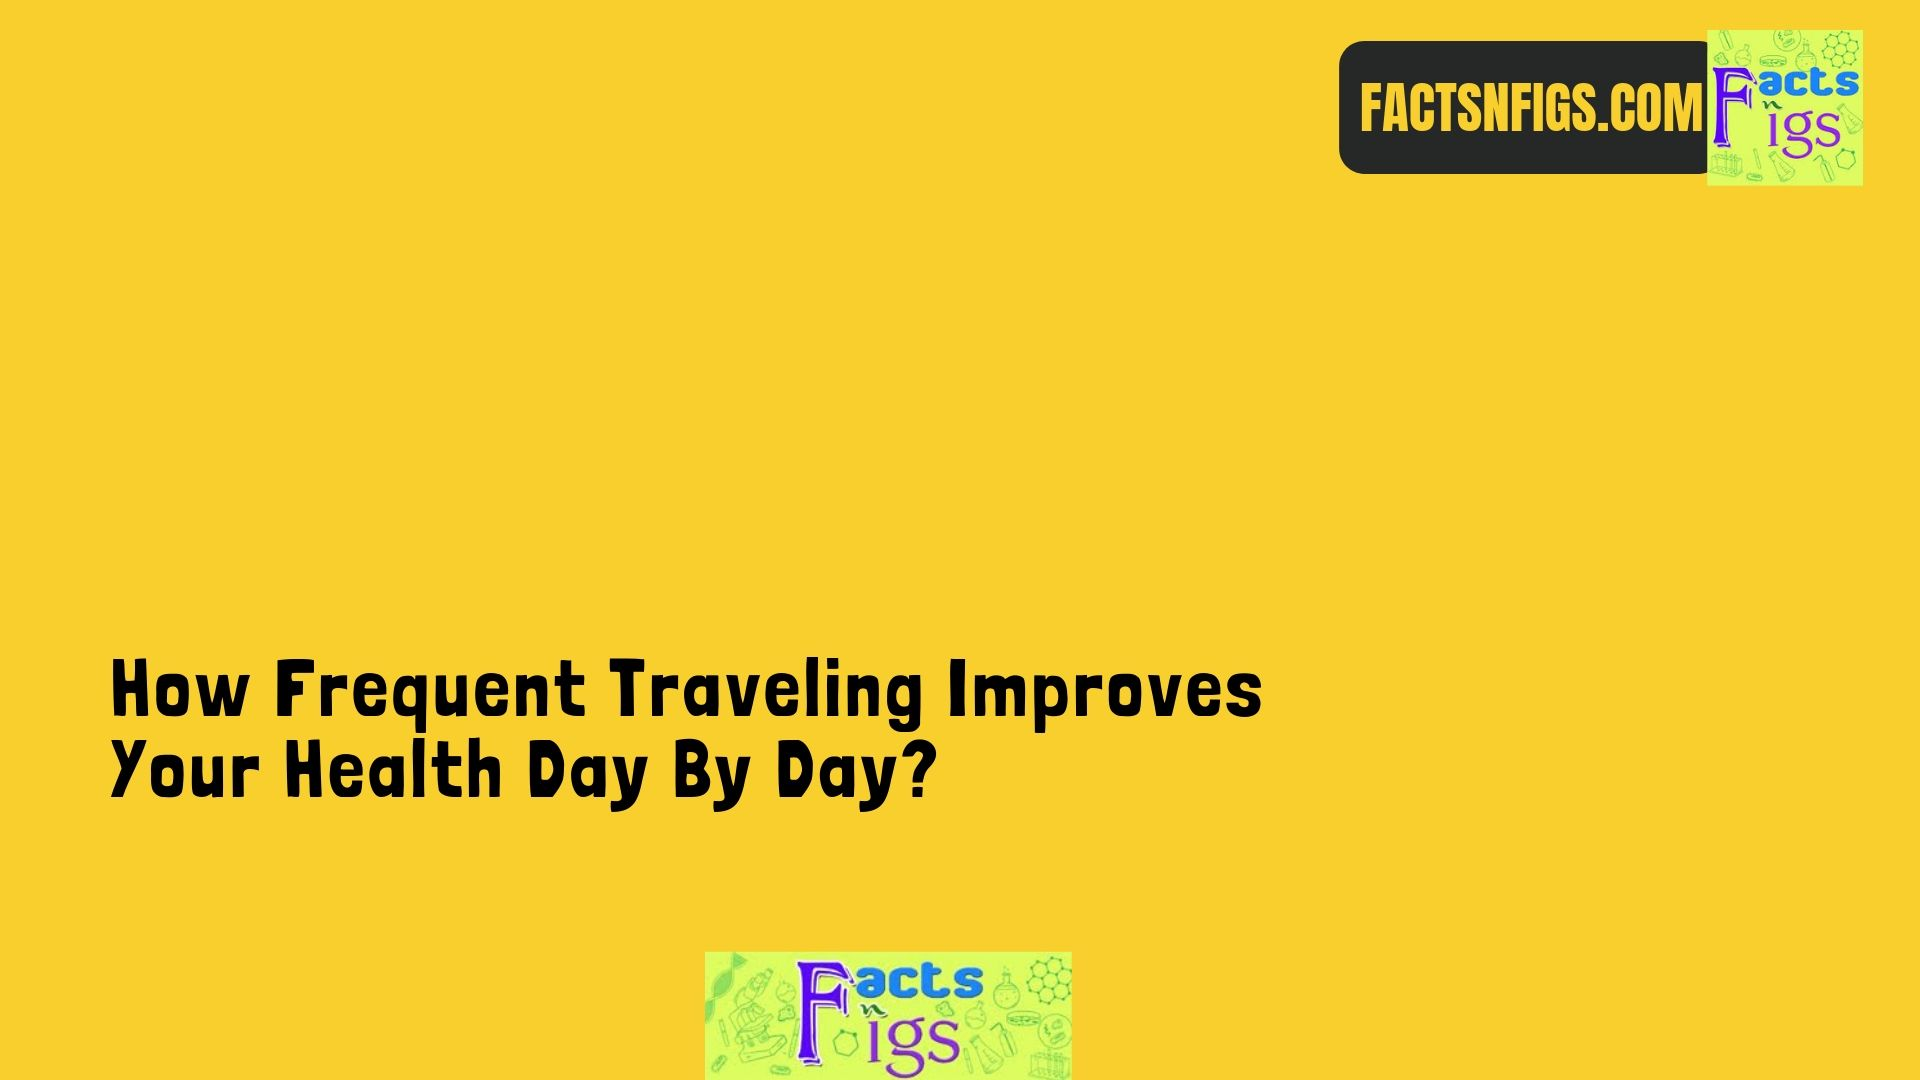 How Frequent Traveling Improves Your Health Day By Day?